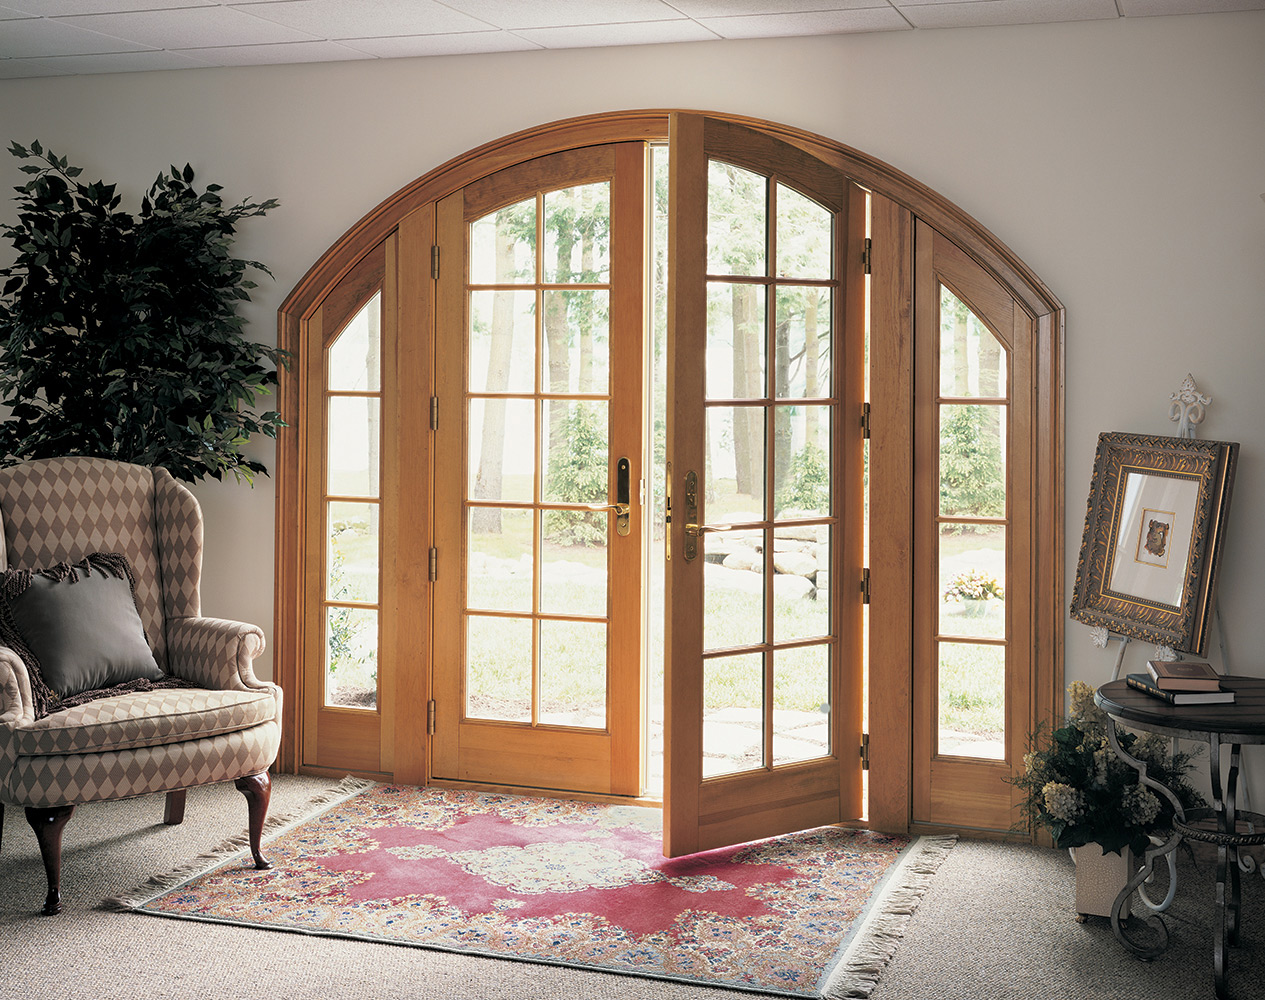 Replacement patio doors wisconsin hometowne windows for Interior french patio doors